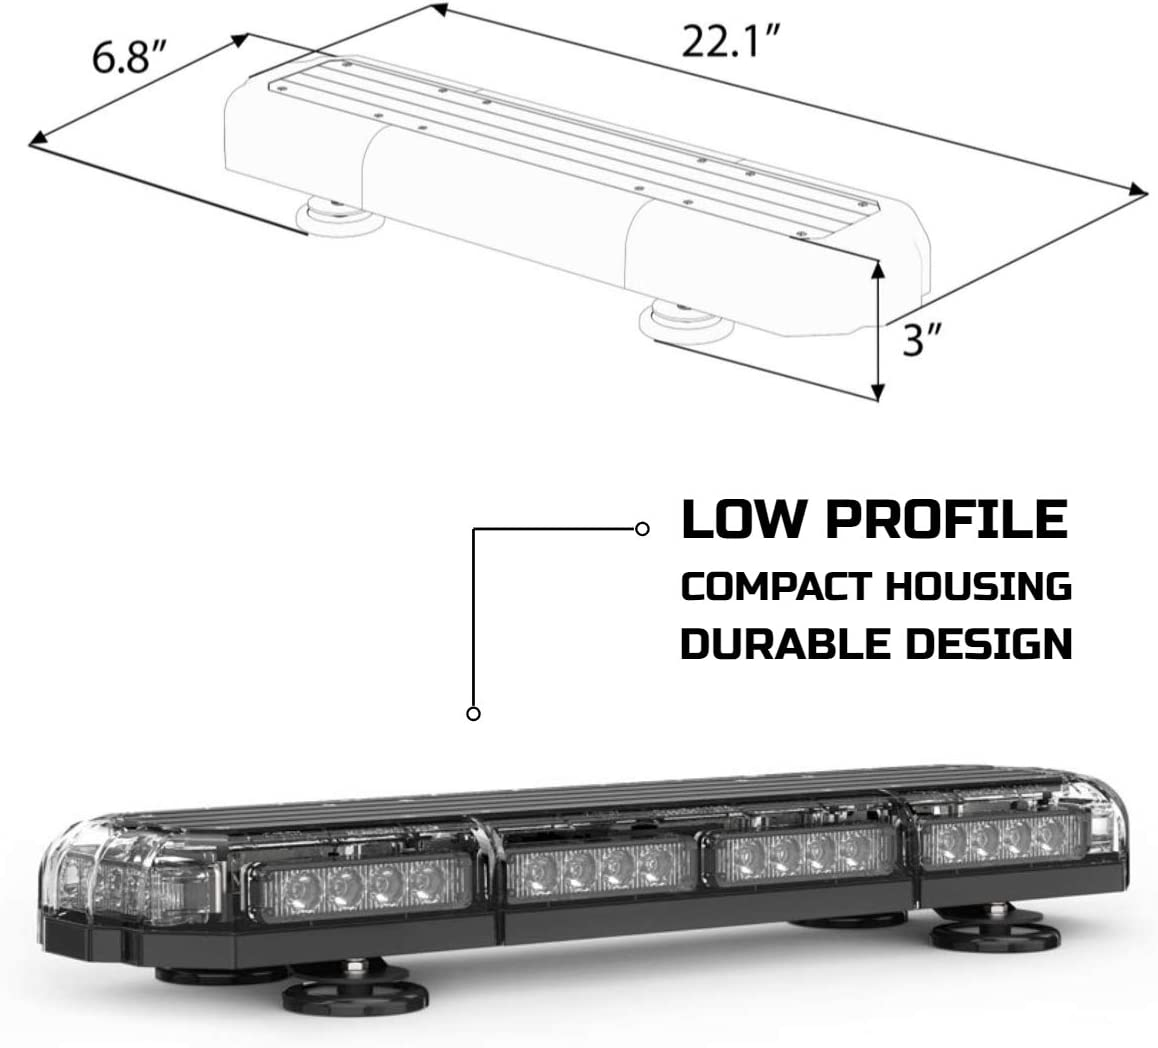 Plows SpeedTech Lights Mini 21 120 Watts LED Strobe Lights for Trucks and Emergency Vehicles with Magnetic Roof Mount in Blue//Green Cars